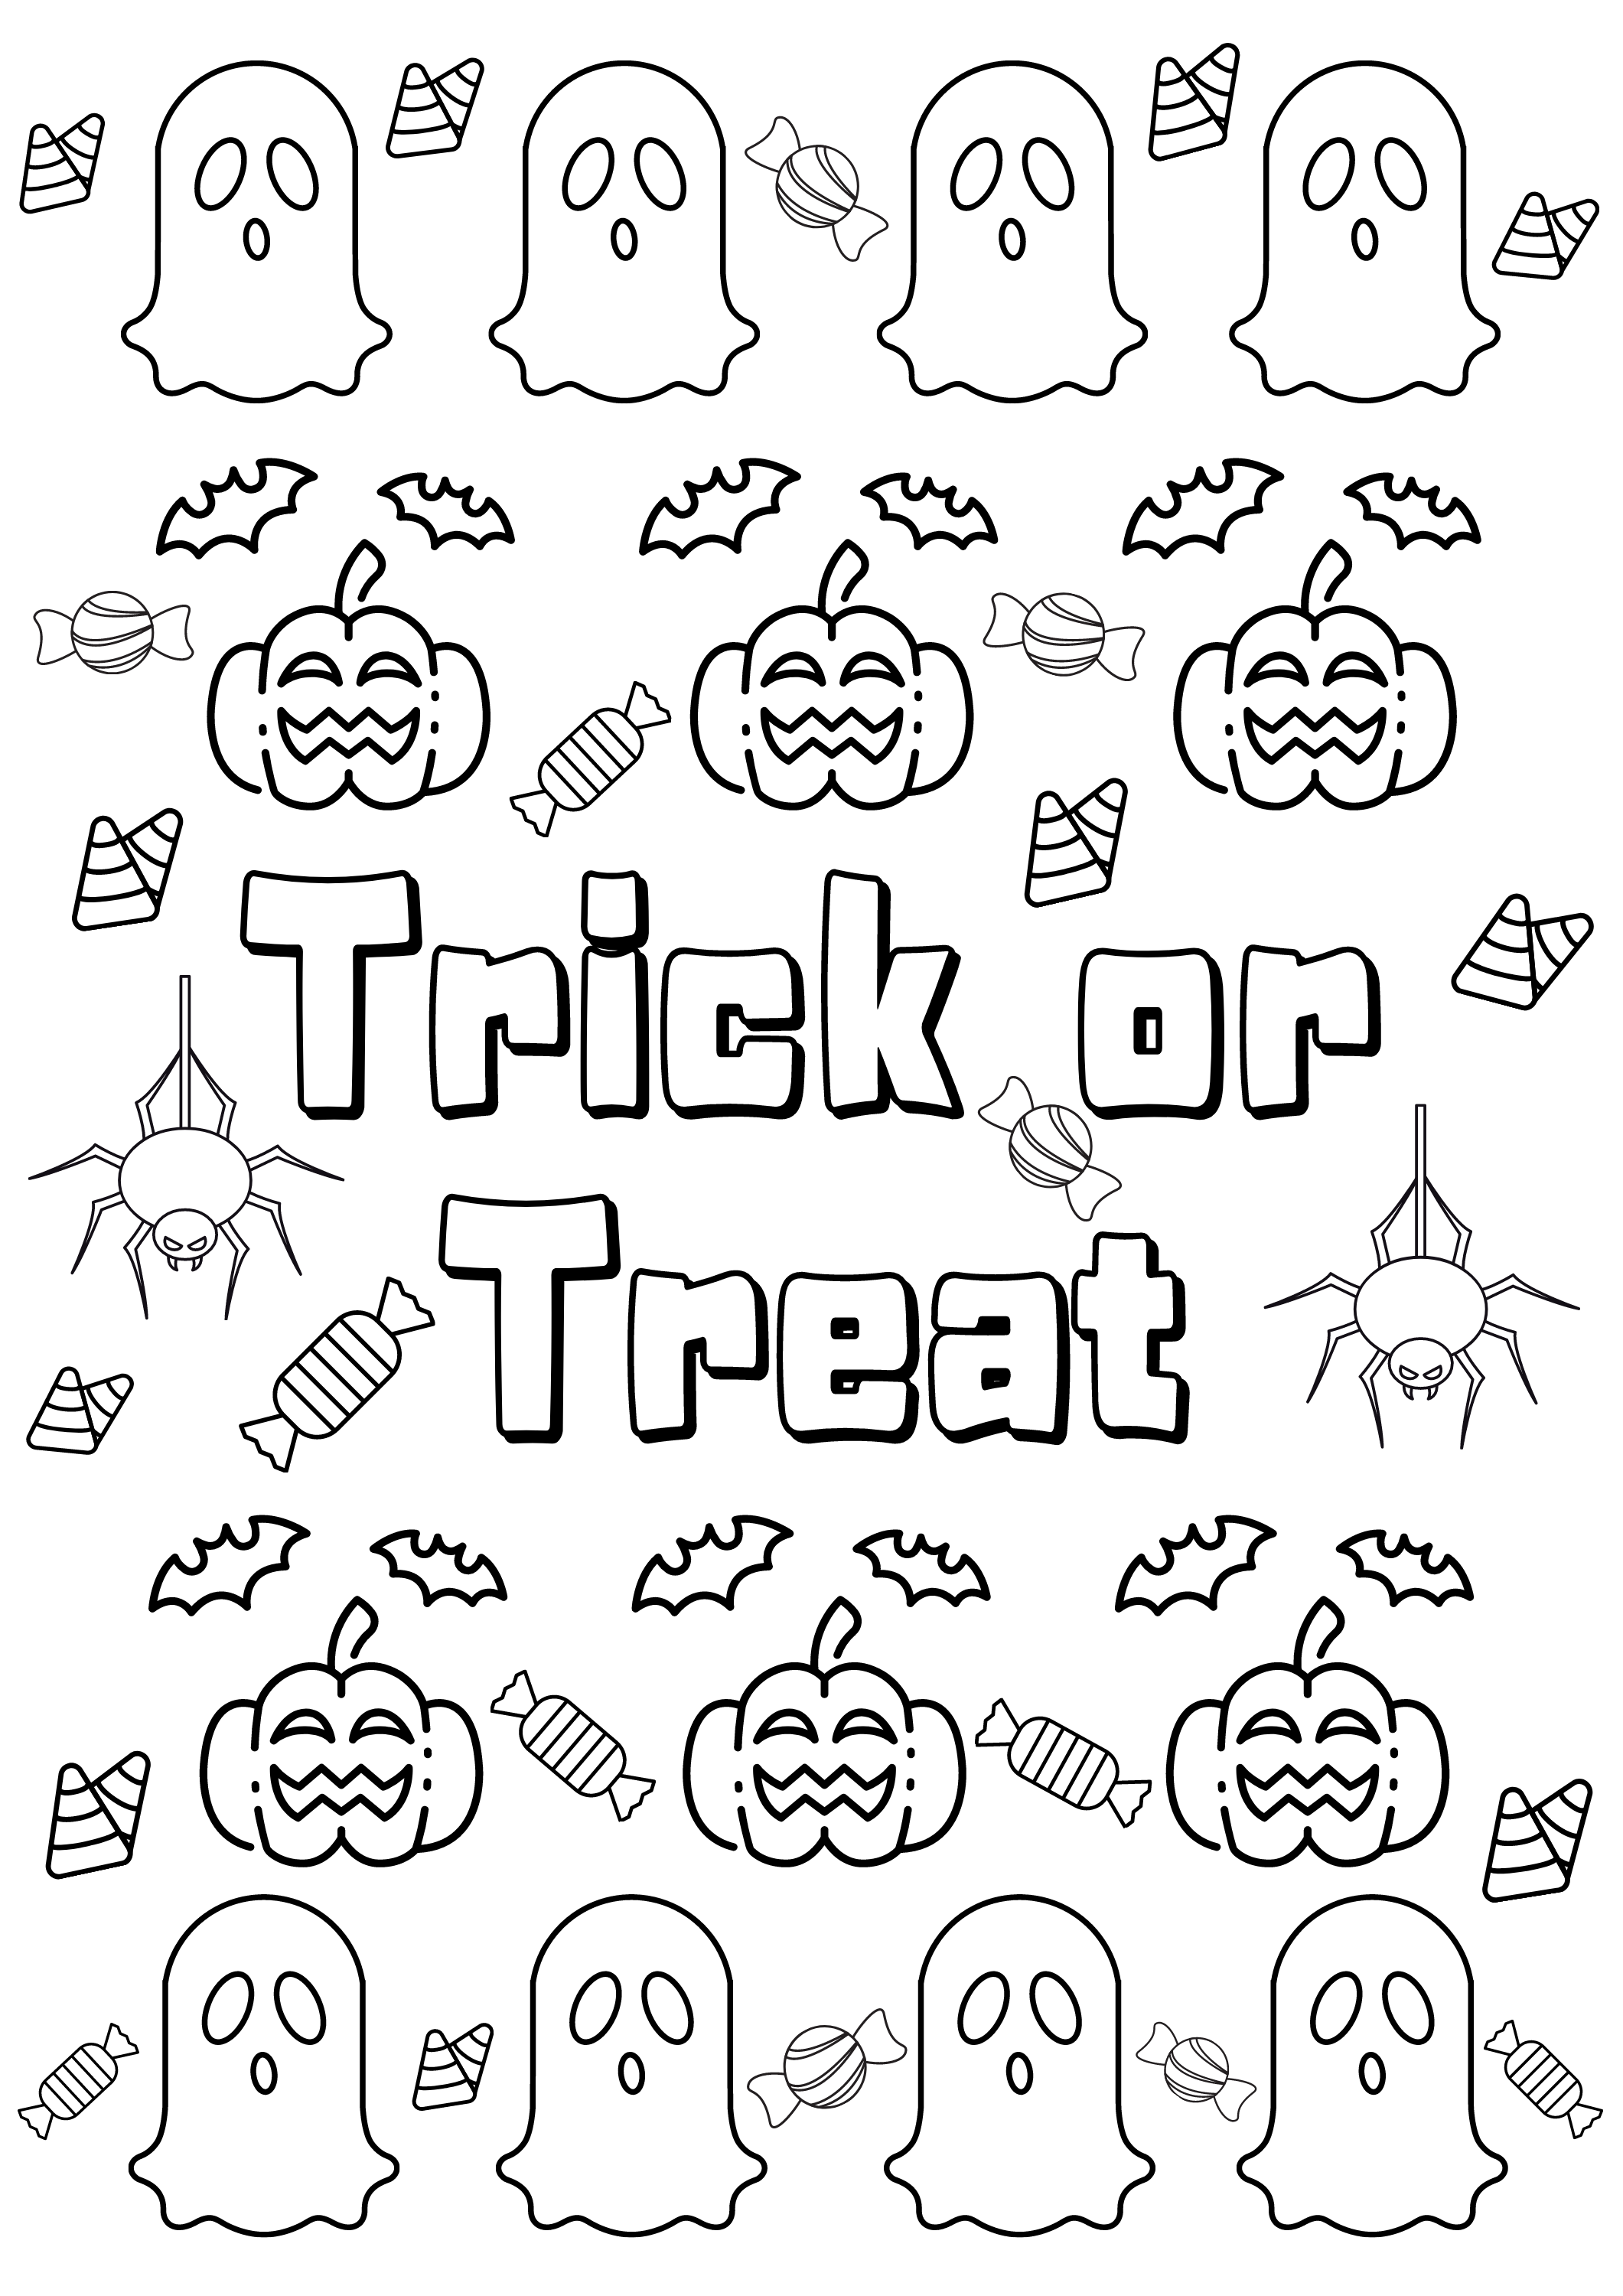 5 Halloween Colouring Sheets Diy Halloween Coloring Pages For Kids Printables Activities Halloween Party Instant Download In 2021 Kids Printable Coloring Pages Halloween Coloring Pages Halloween Coloring